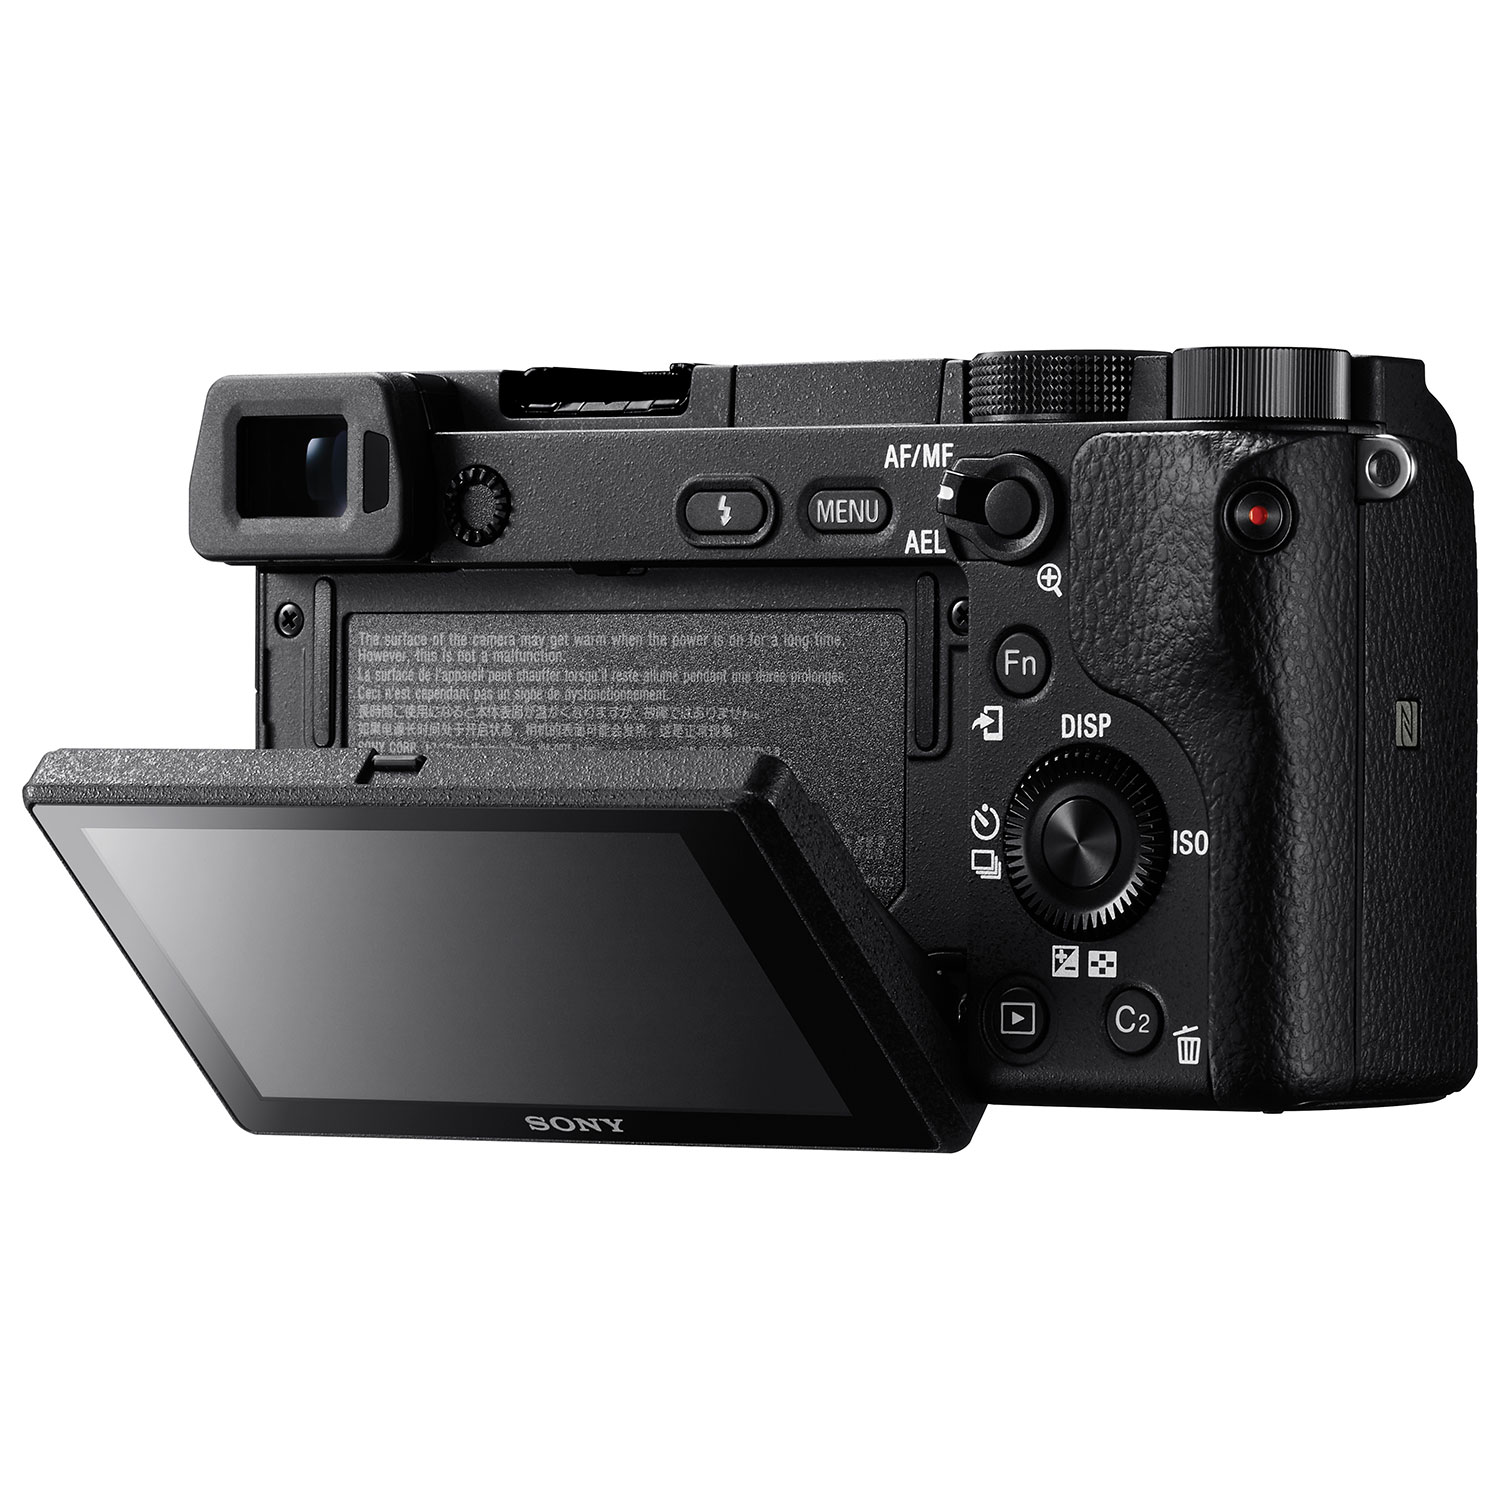 sony a6300. sony a6300 mirrorless camera with 16-50mm oss lens kit : kits - best buy canada